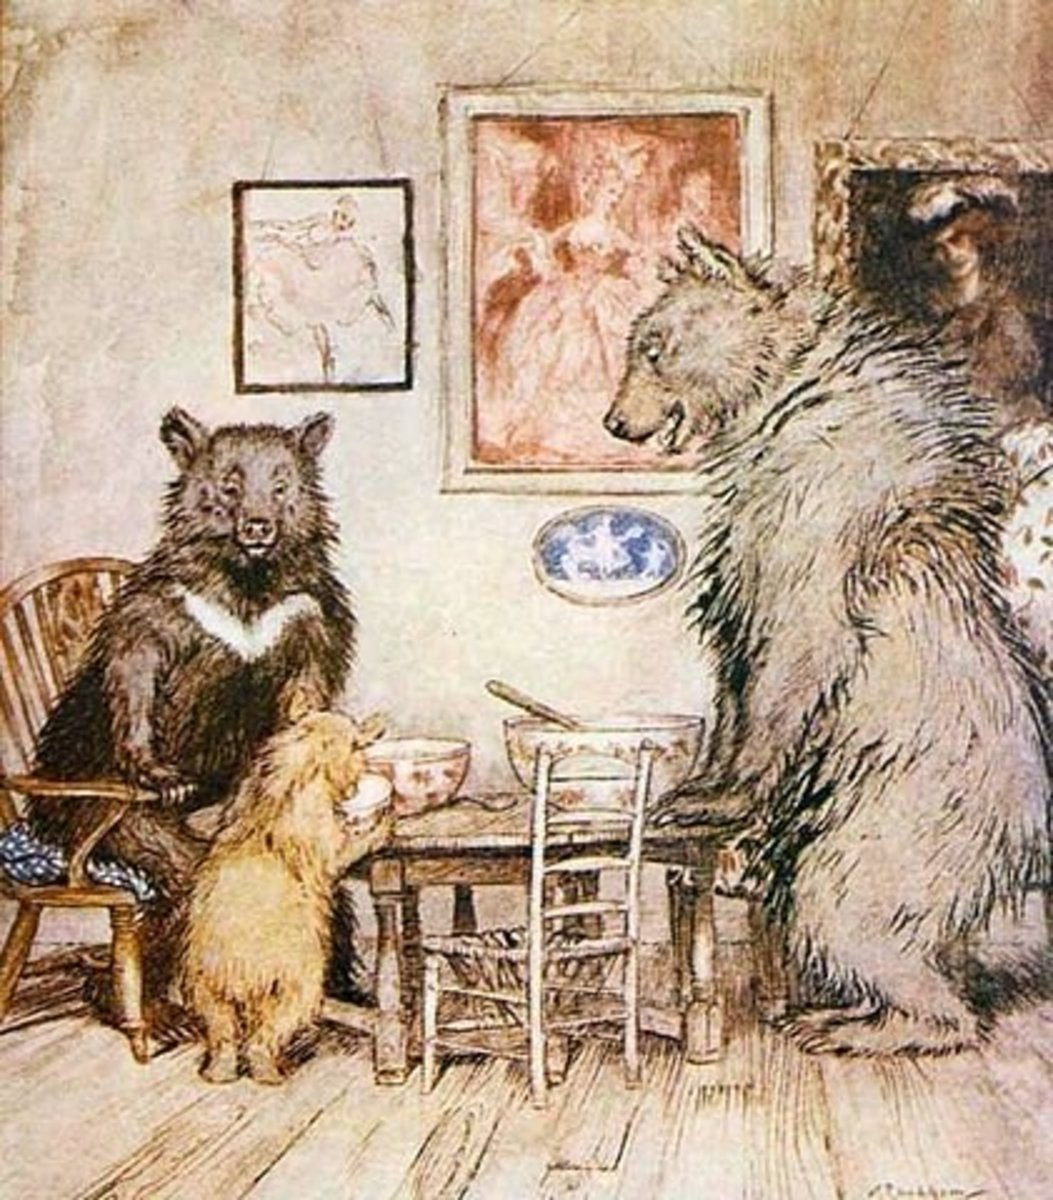 Illustration by Arthur Rackham, source: Gutenberg.org